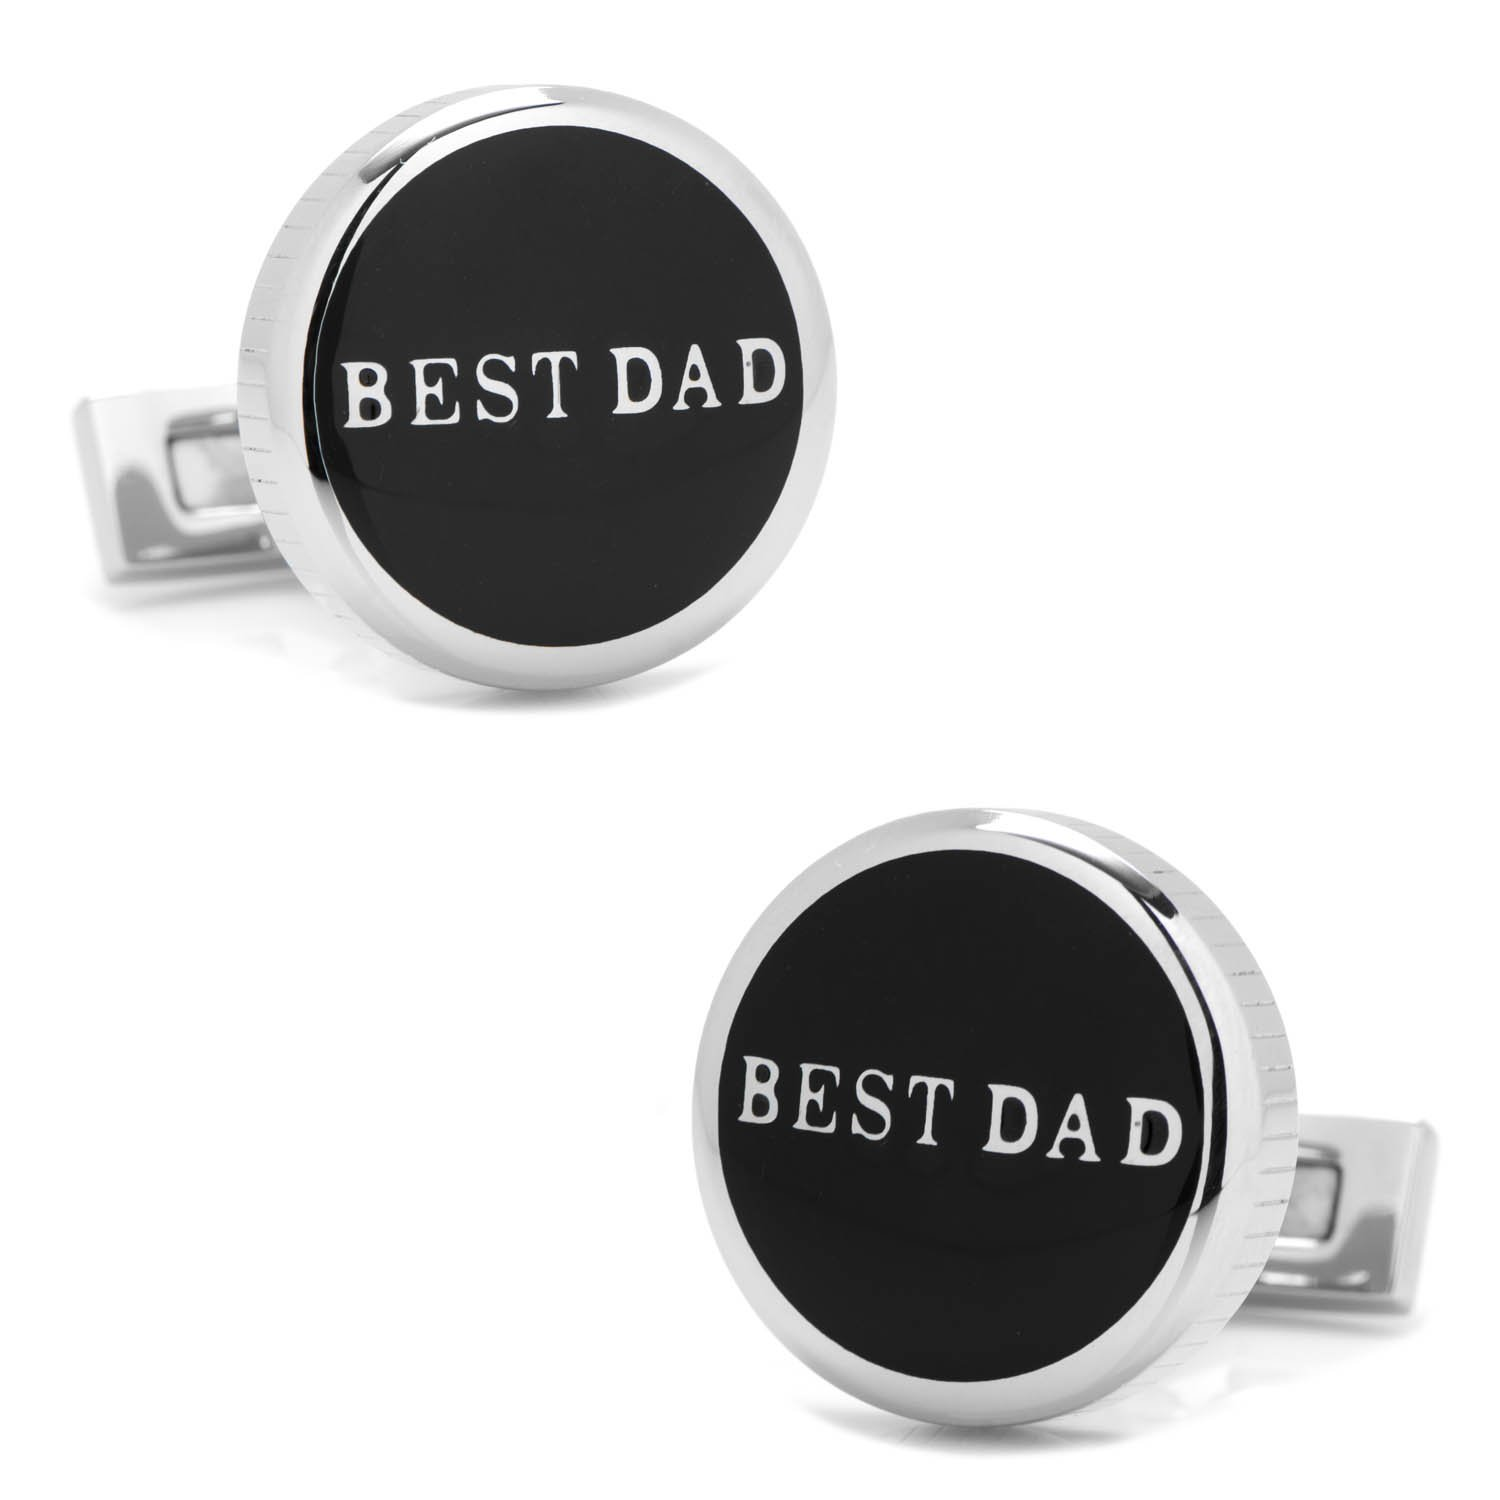 Ox and Bull Trading Co. Best Dad Black Stainless Steel Cufflinks OB-DADBK-STL